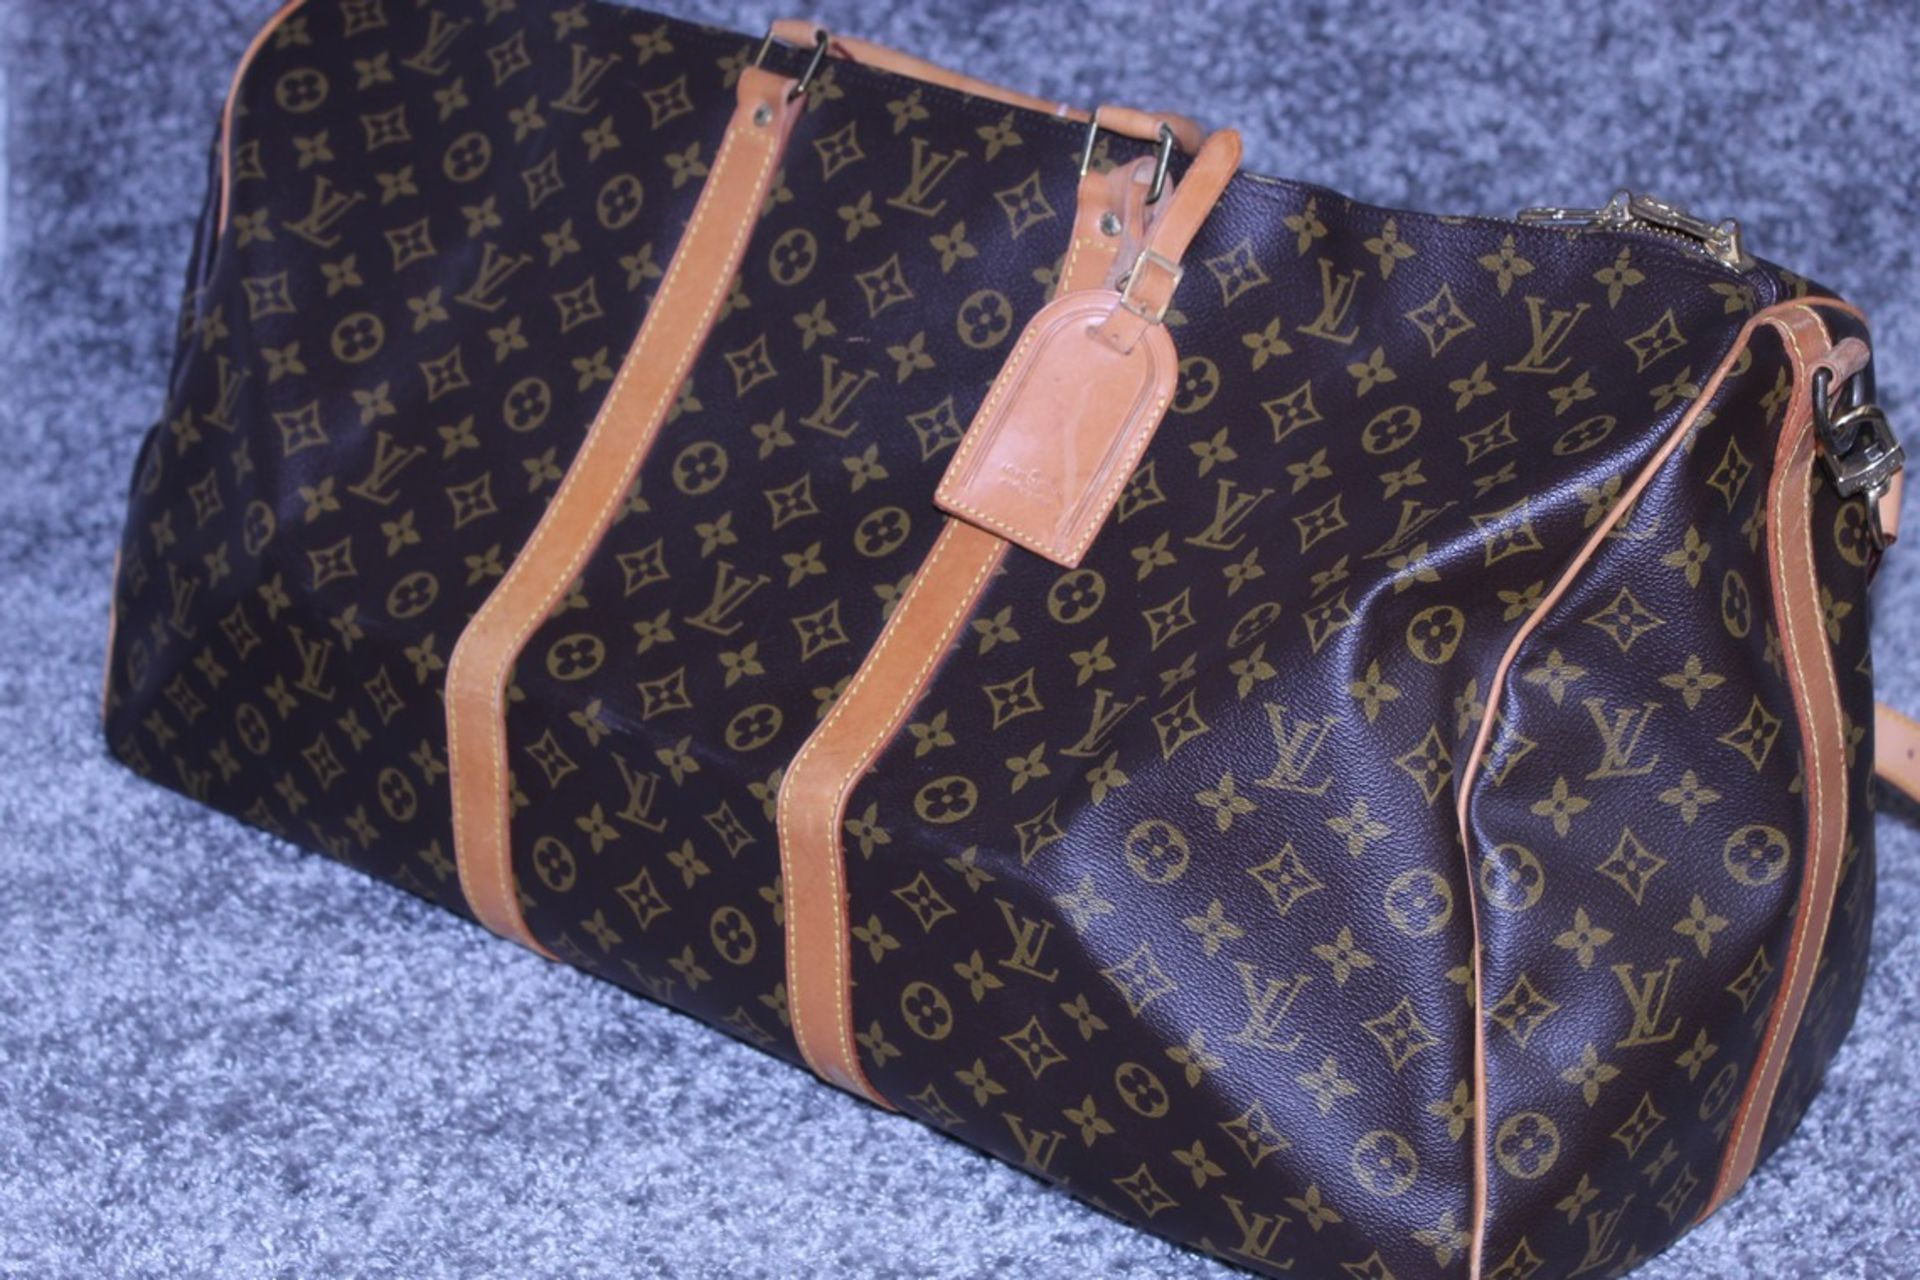 RRP £1,800 Louis Vuitton Keepall 60 Bandouliere Travel Bag, Brown Coated Canvas Monogram, 60X26X31Cm - Image 3 of 3